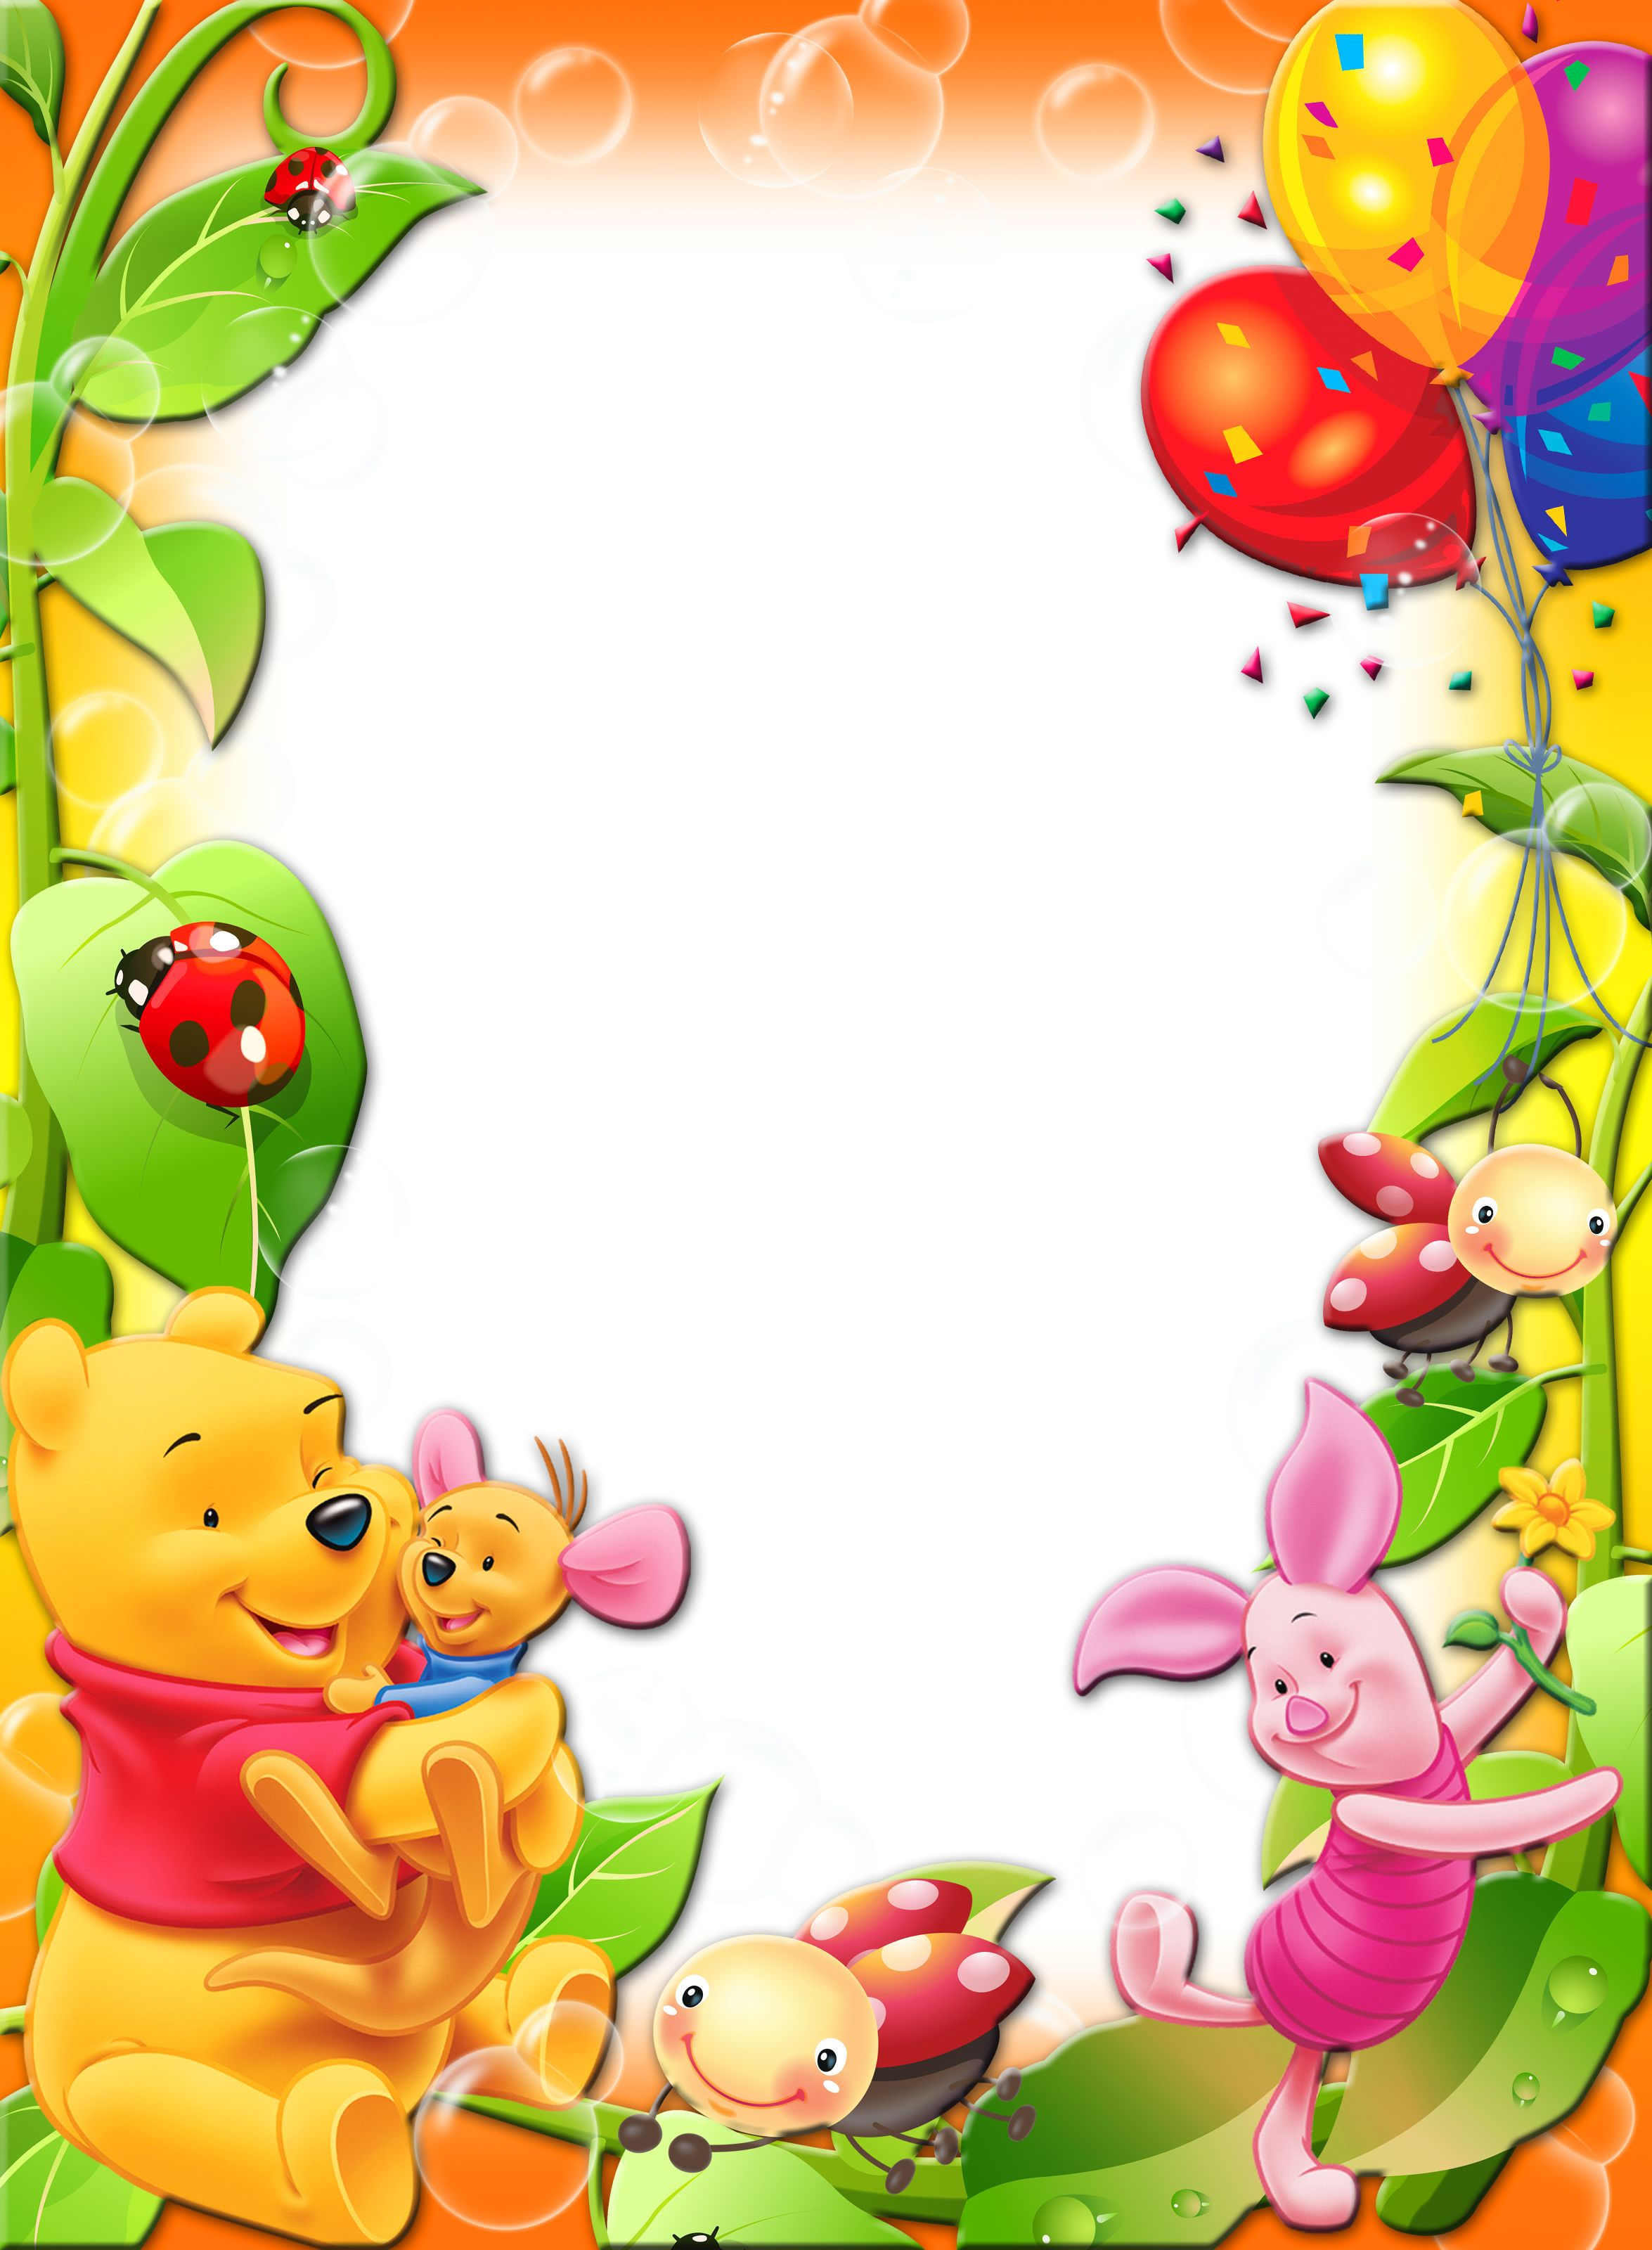 Border Design Disney Character : Pooh bear borders stationary backgrounds pinterest